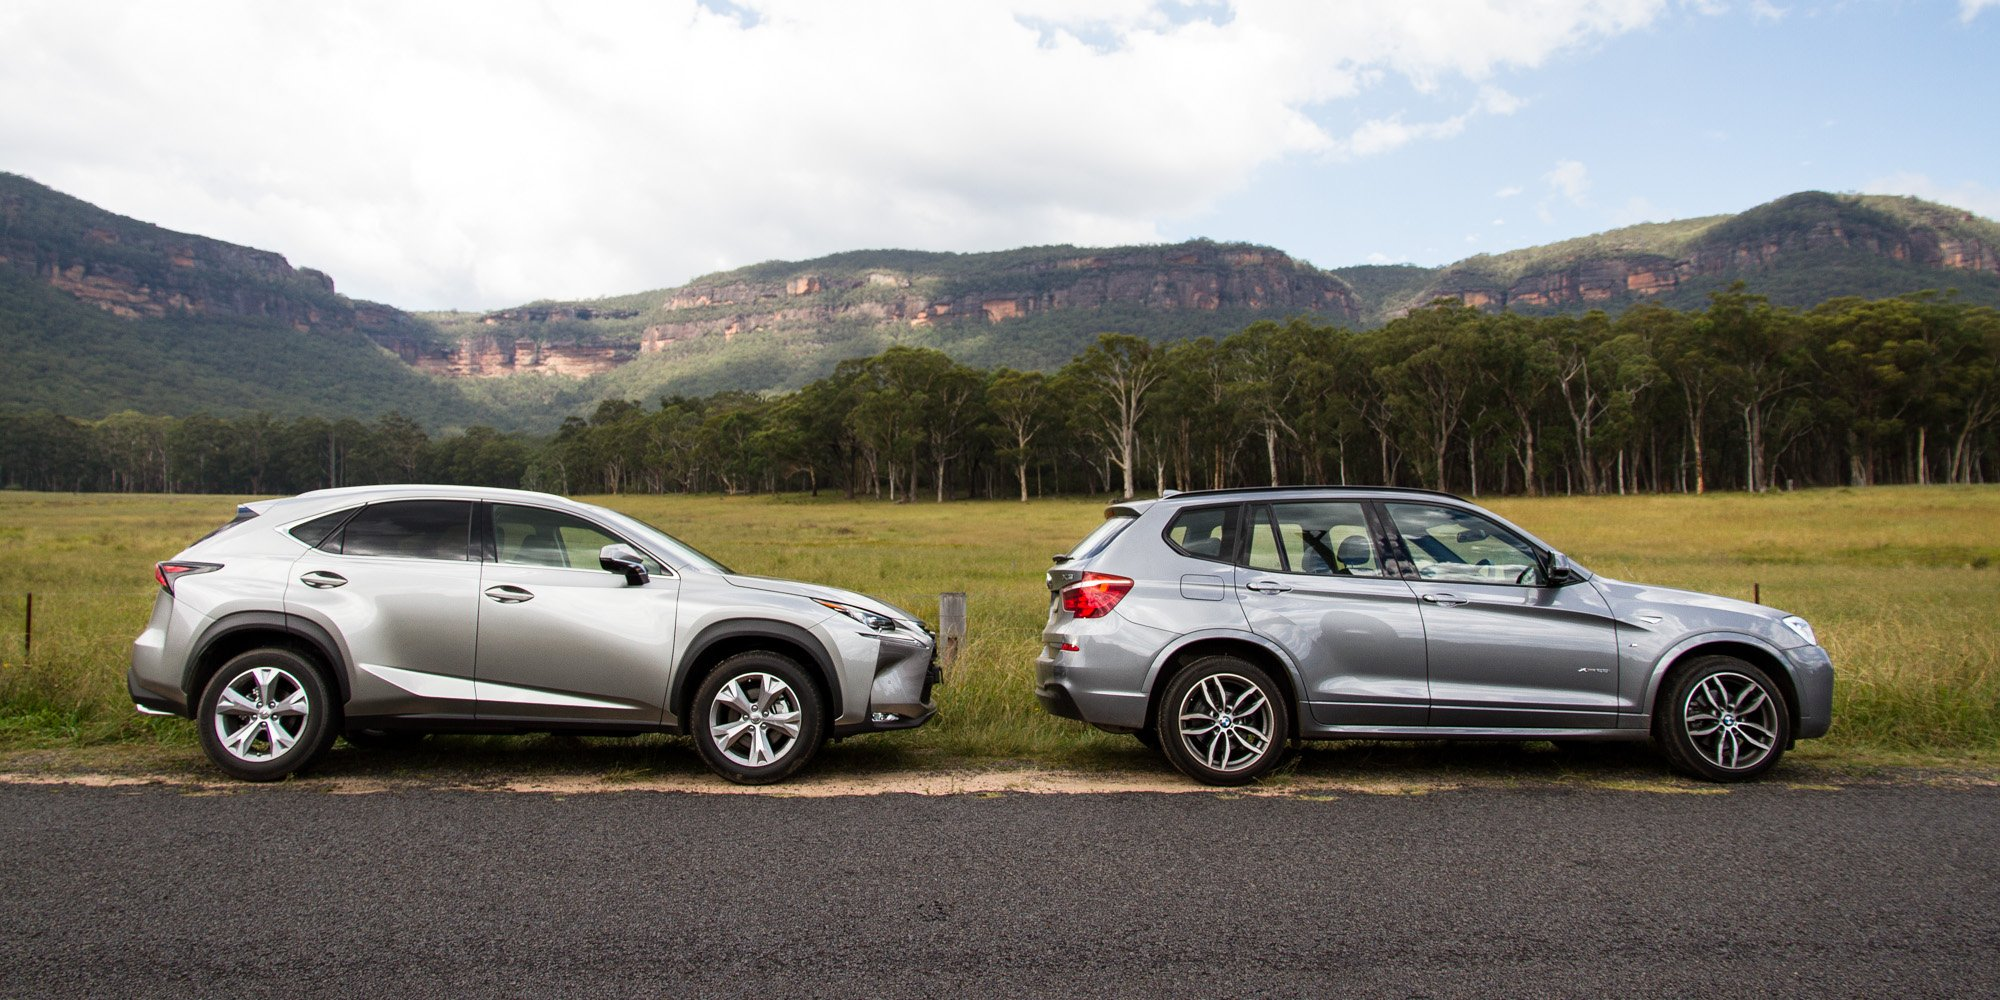 Bmw X3 Xdrive28i V Lexus Nx200t Sports Luxury Prestige Suv Comparison Test Photos